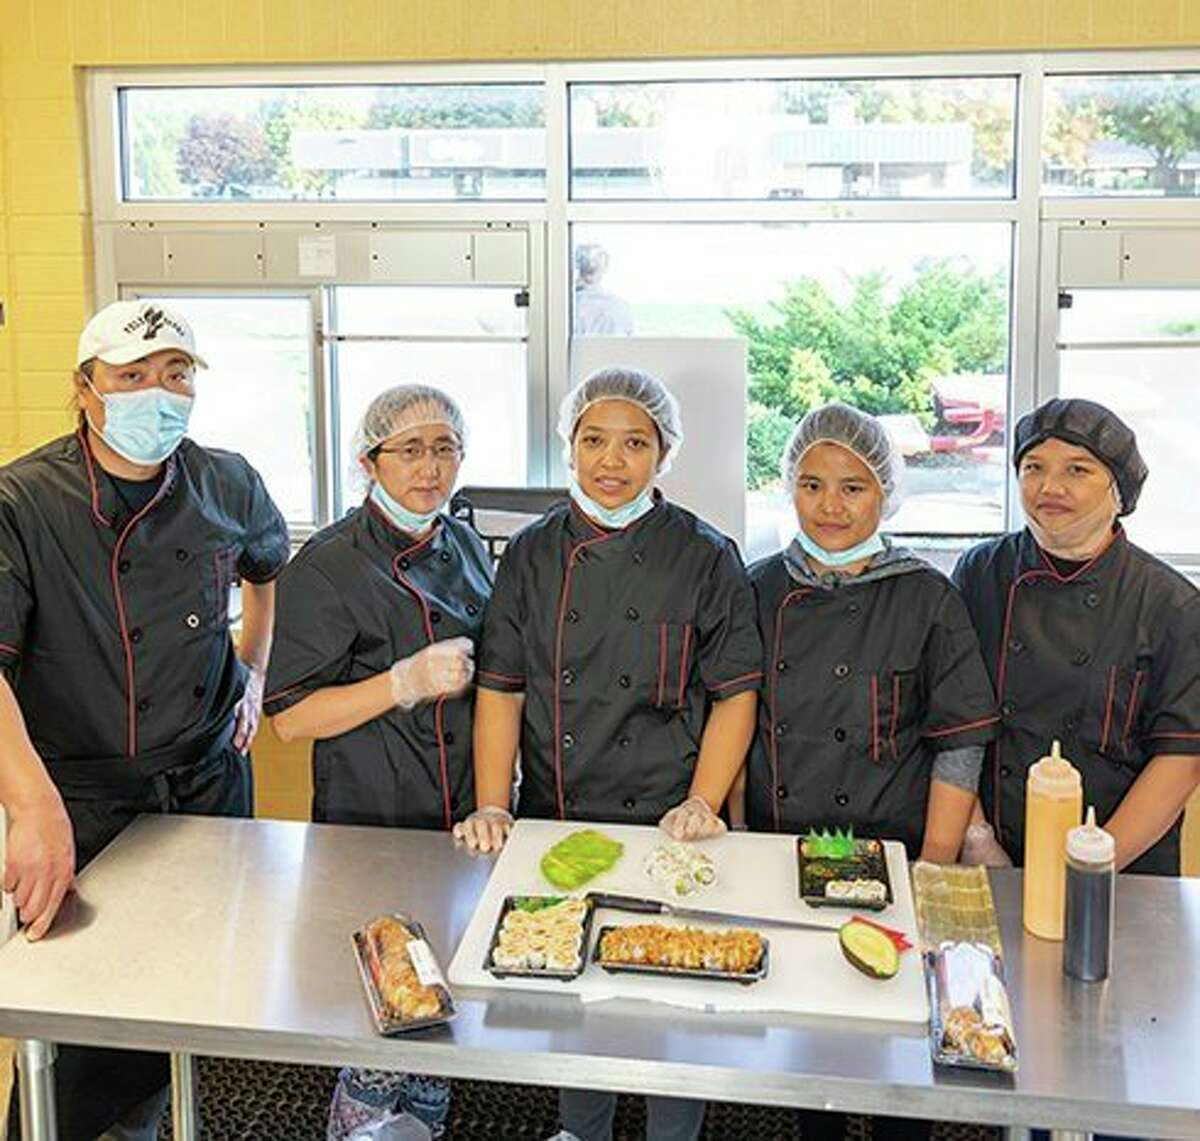 The Ferris State University Dining Services operation contracts with Grand Rapids-based Anu Sushi, a corporation whose production staff includes refugees from Myanmar, an Asian nation facing a violent political struggle. Anu Sushi provides a meal to orphans in Myanmar for each unit they sell. (Courtesy/John Smith)